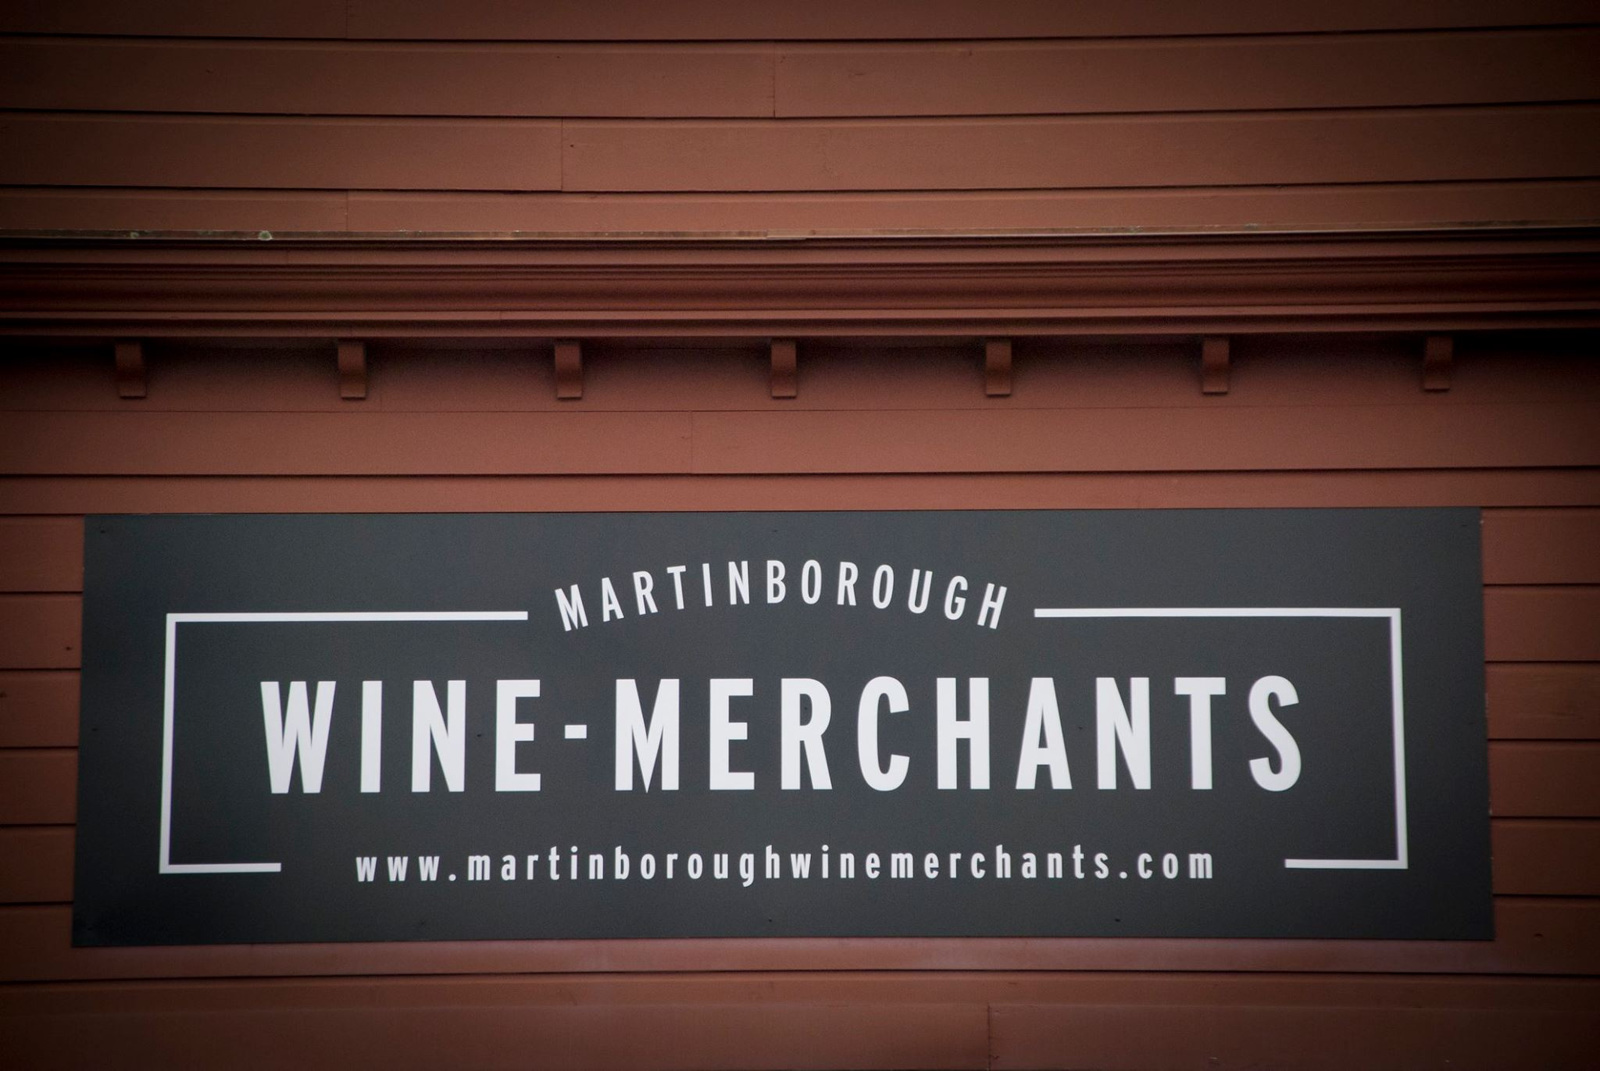 martinborough-wine-merchants-05.JPG